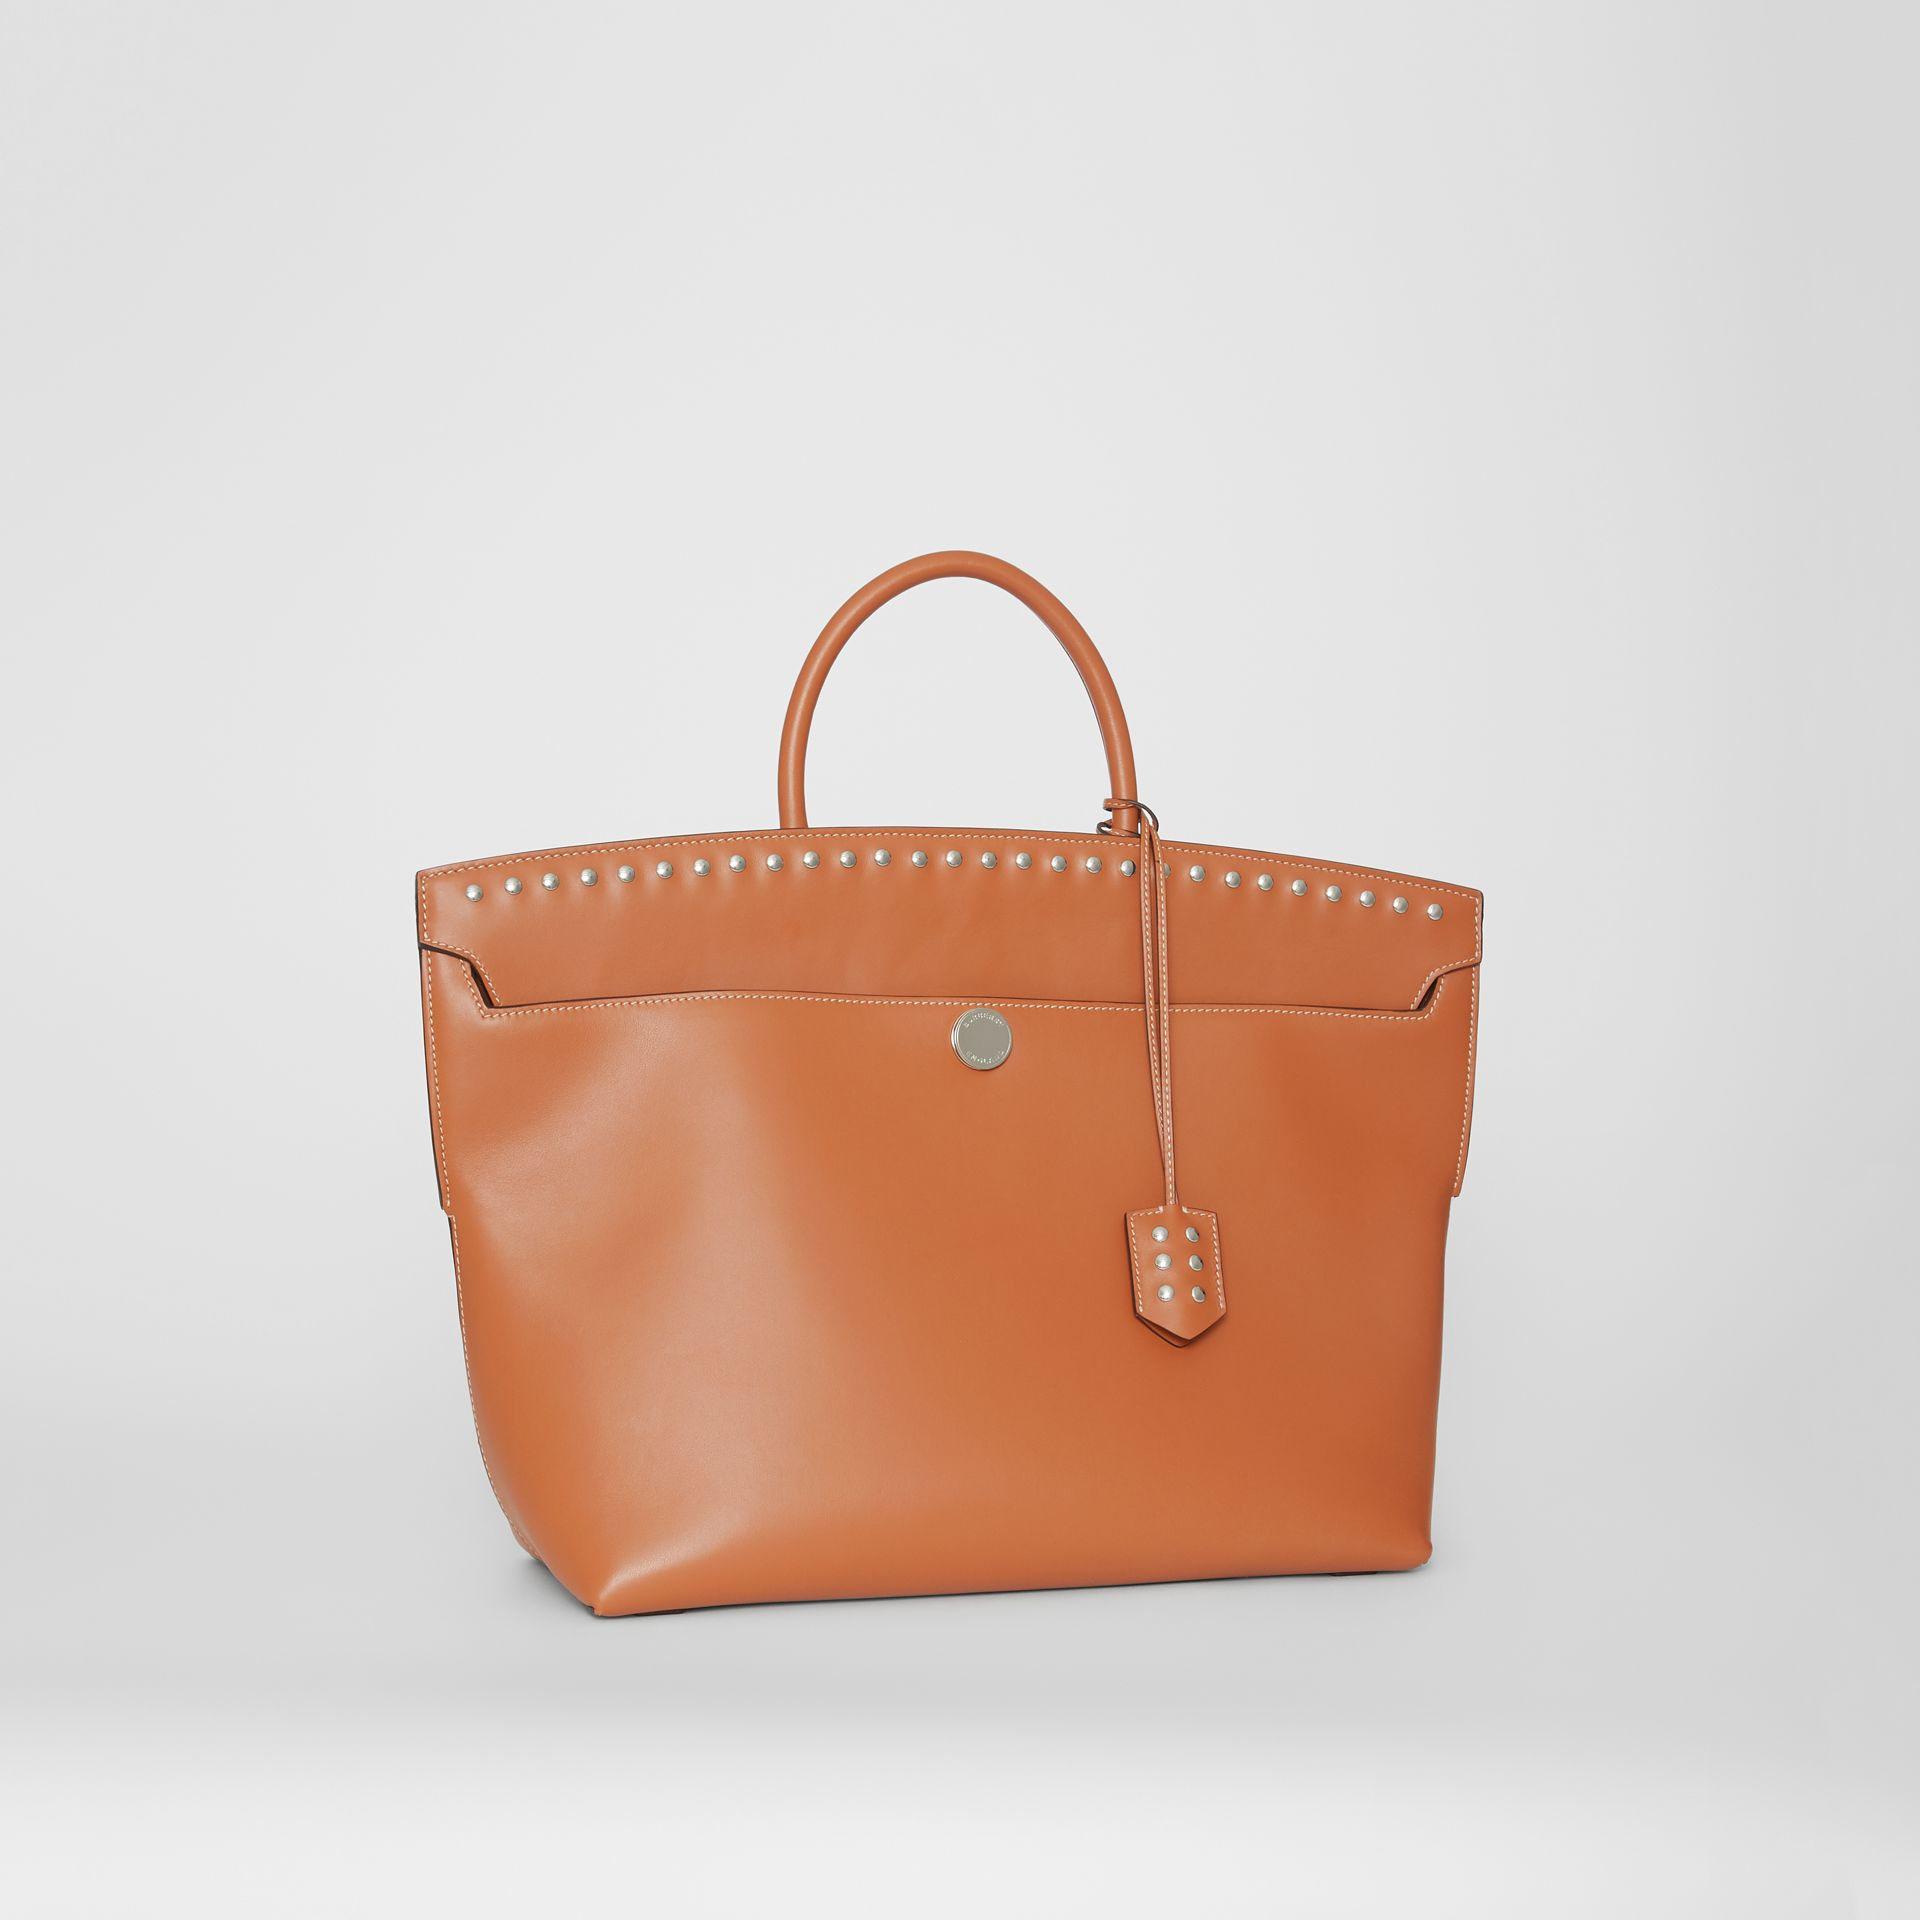 Studded Leather Society Top Handle Bag in Copper Brown - Women | Burberry - gallery image 6